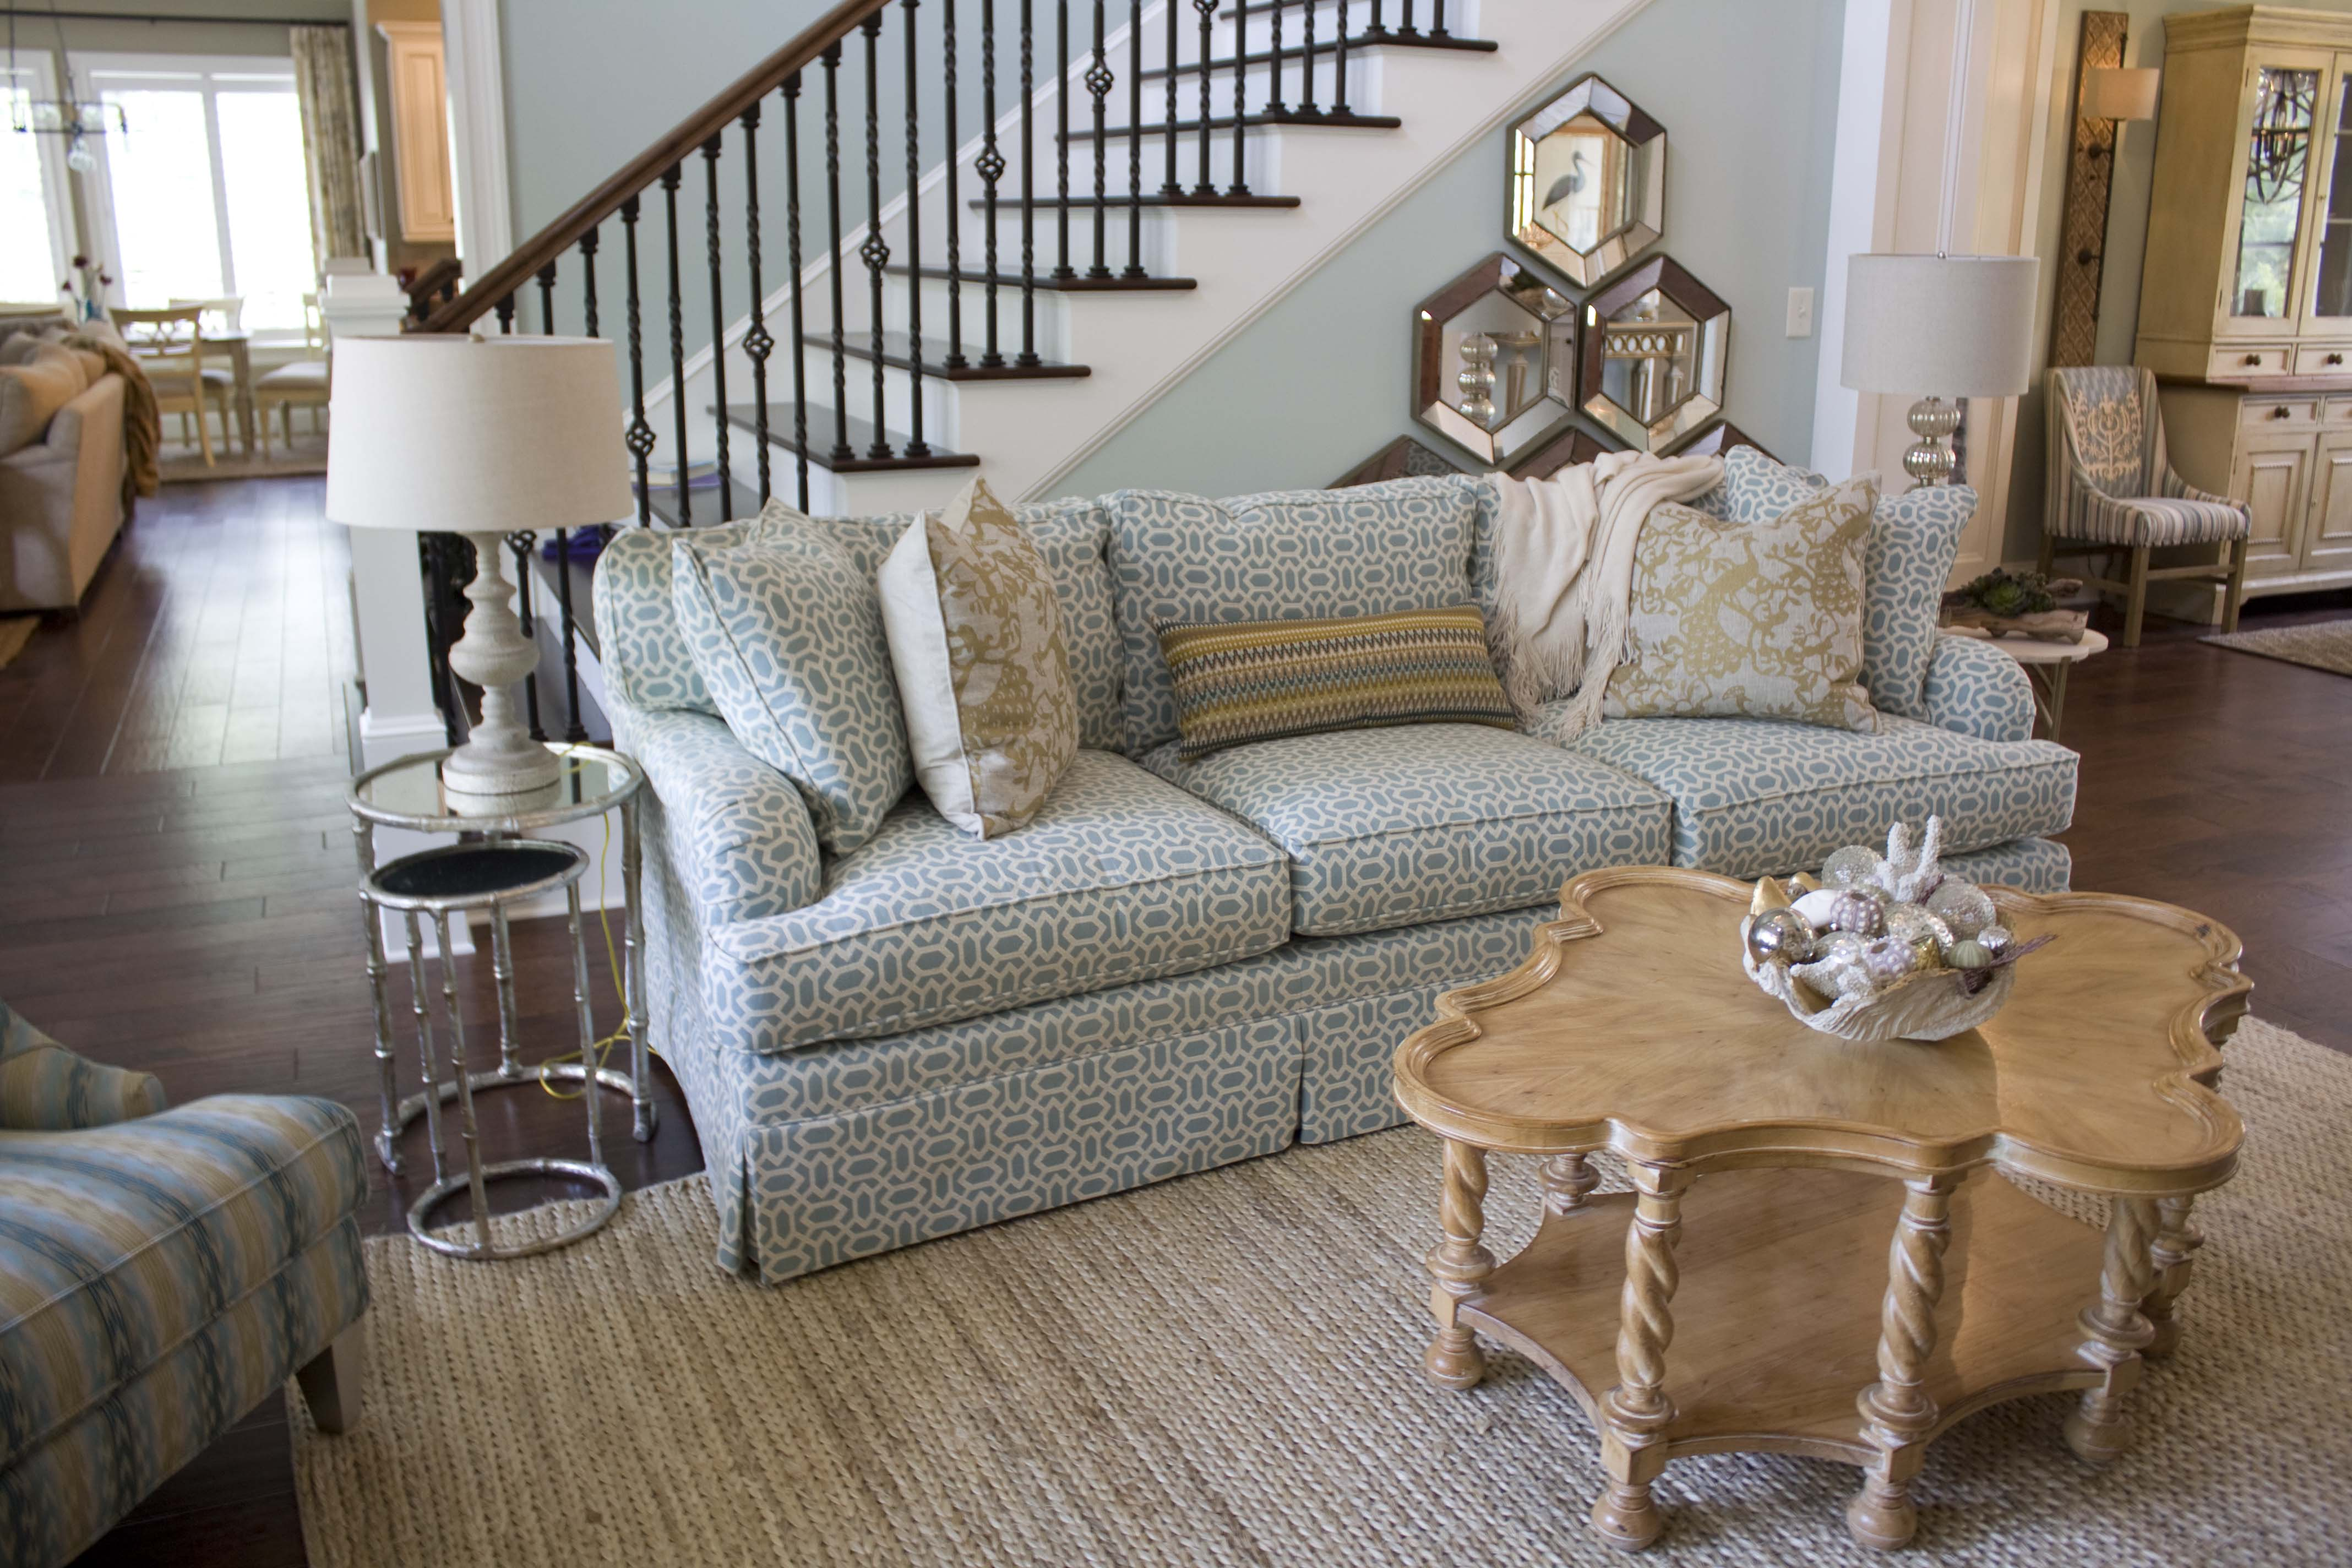 crypton fabric for sofas where can i buy a chesterfield sofa when to save and splurge chd interiors home furnishings accessories antiques fabrics floors walls